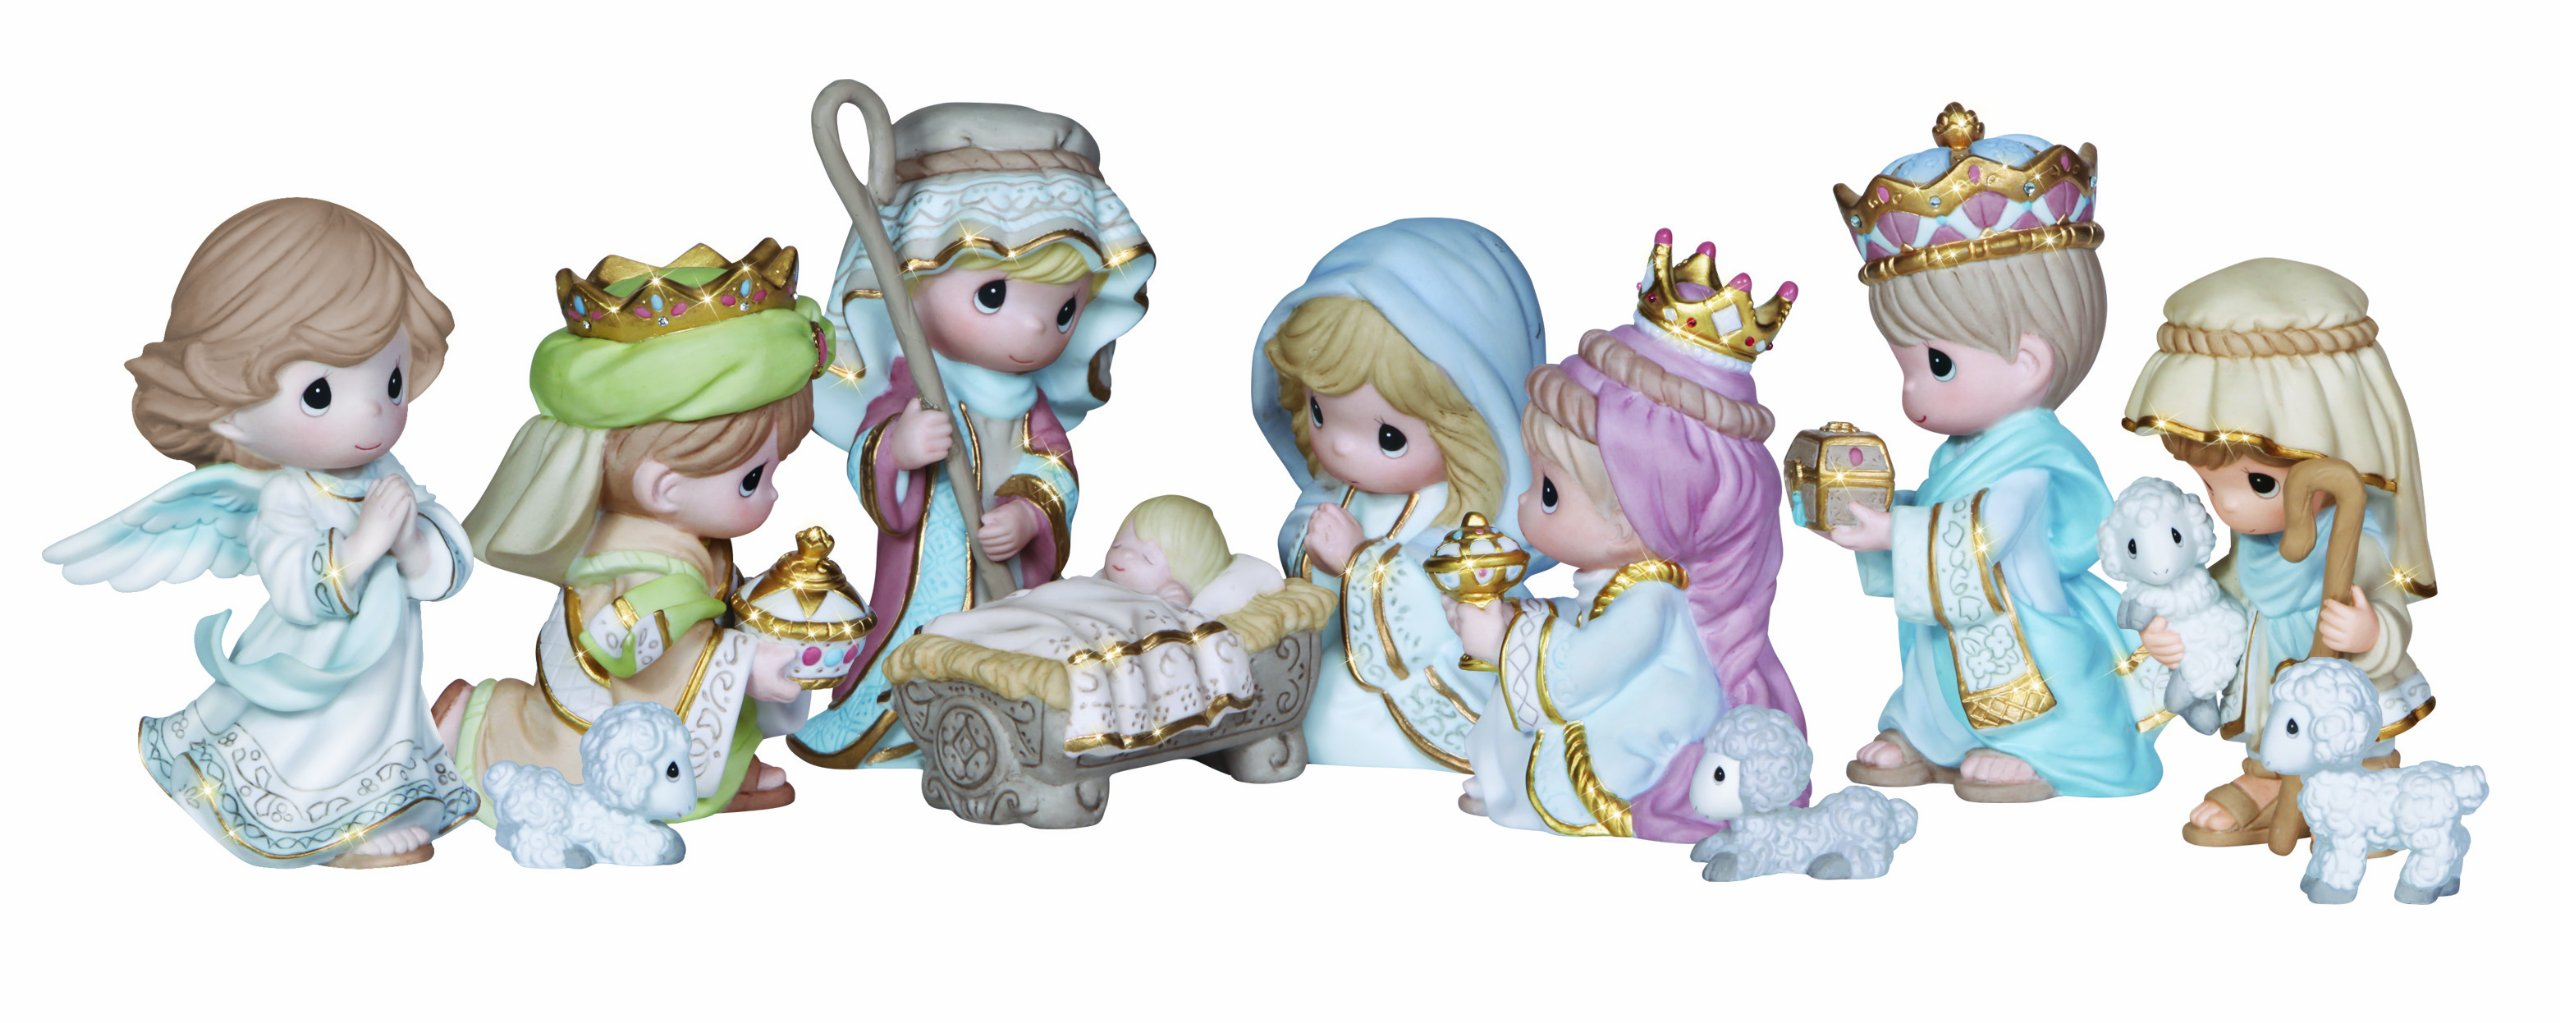 "Precious Moments, Christmas Gifts, ""Come Let Us Adore Him"", 11 Piece Set, Mini Bisque Porcelain Figurines, #131064 by Precious Moments"